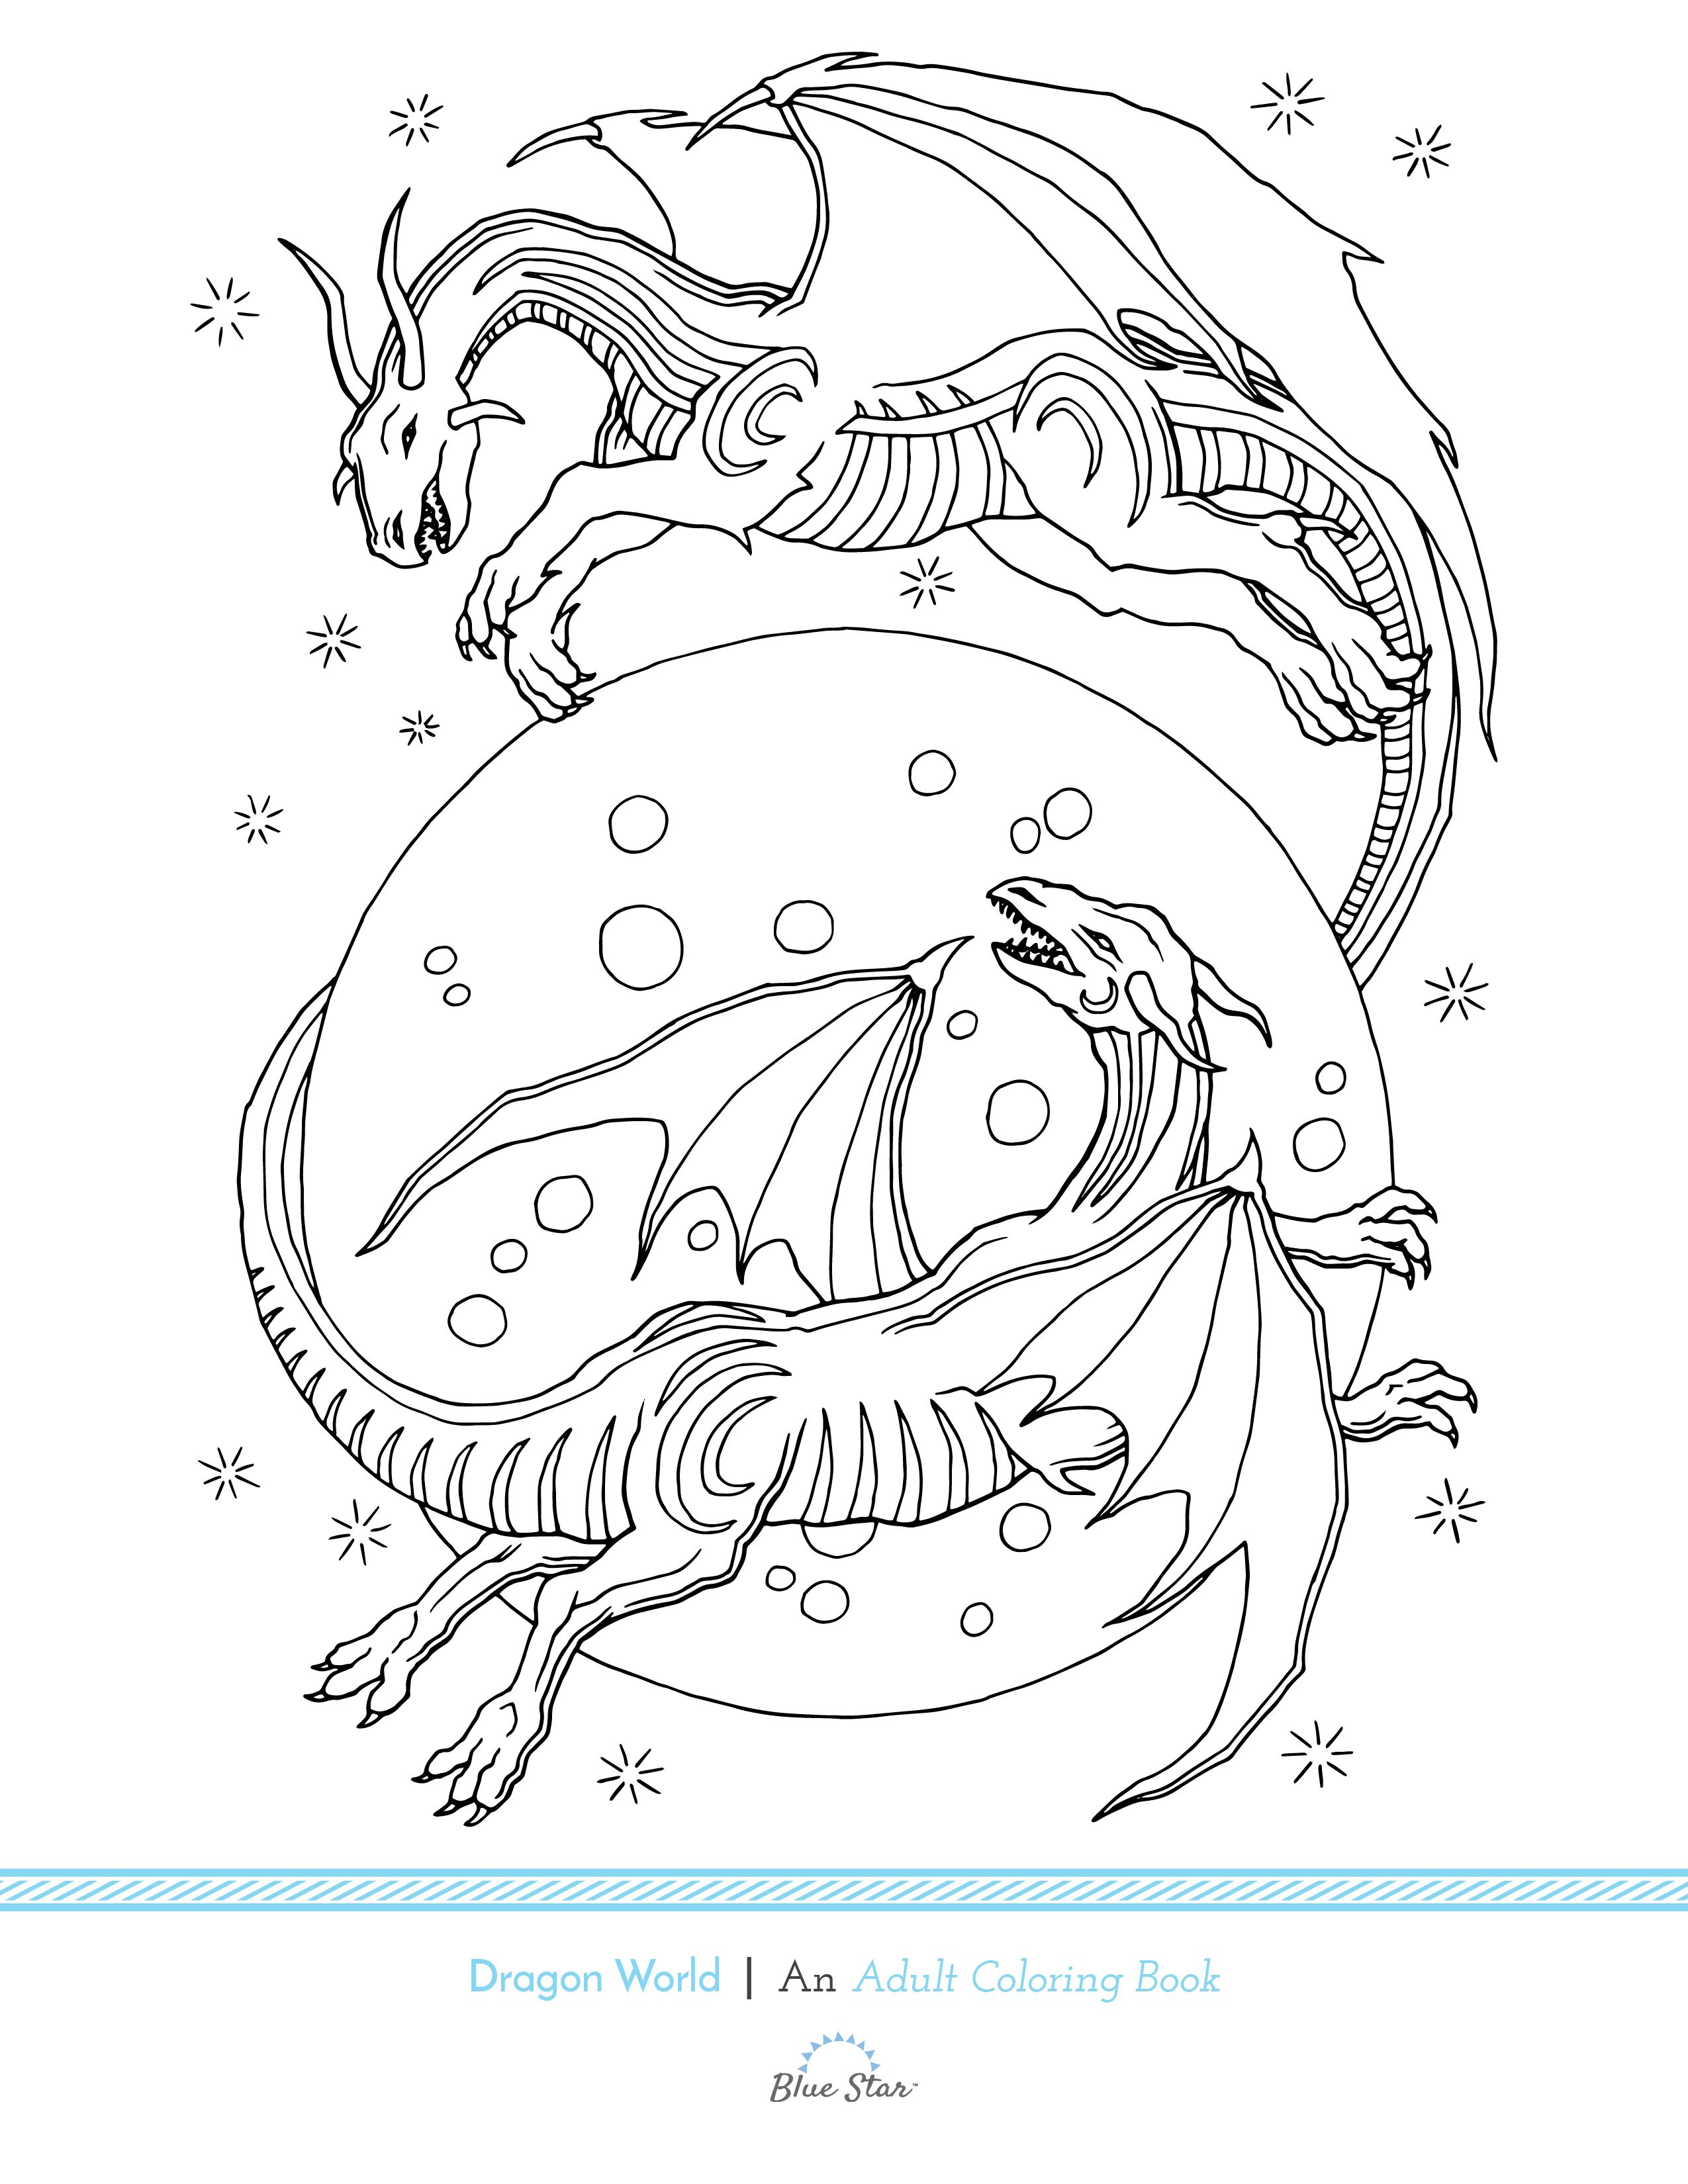 Let Your Imagination Run Wild With This Free Adult Coloring Book Page From Mark Coyles Upcoming Dragon World To Be Released December